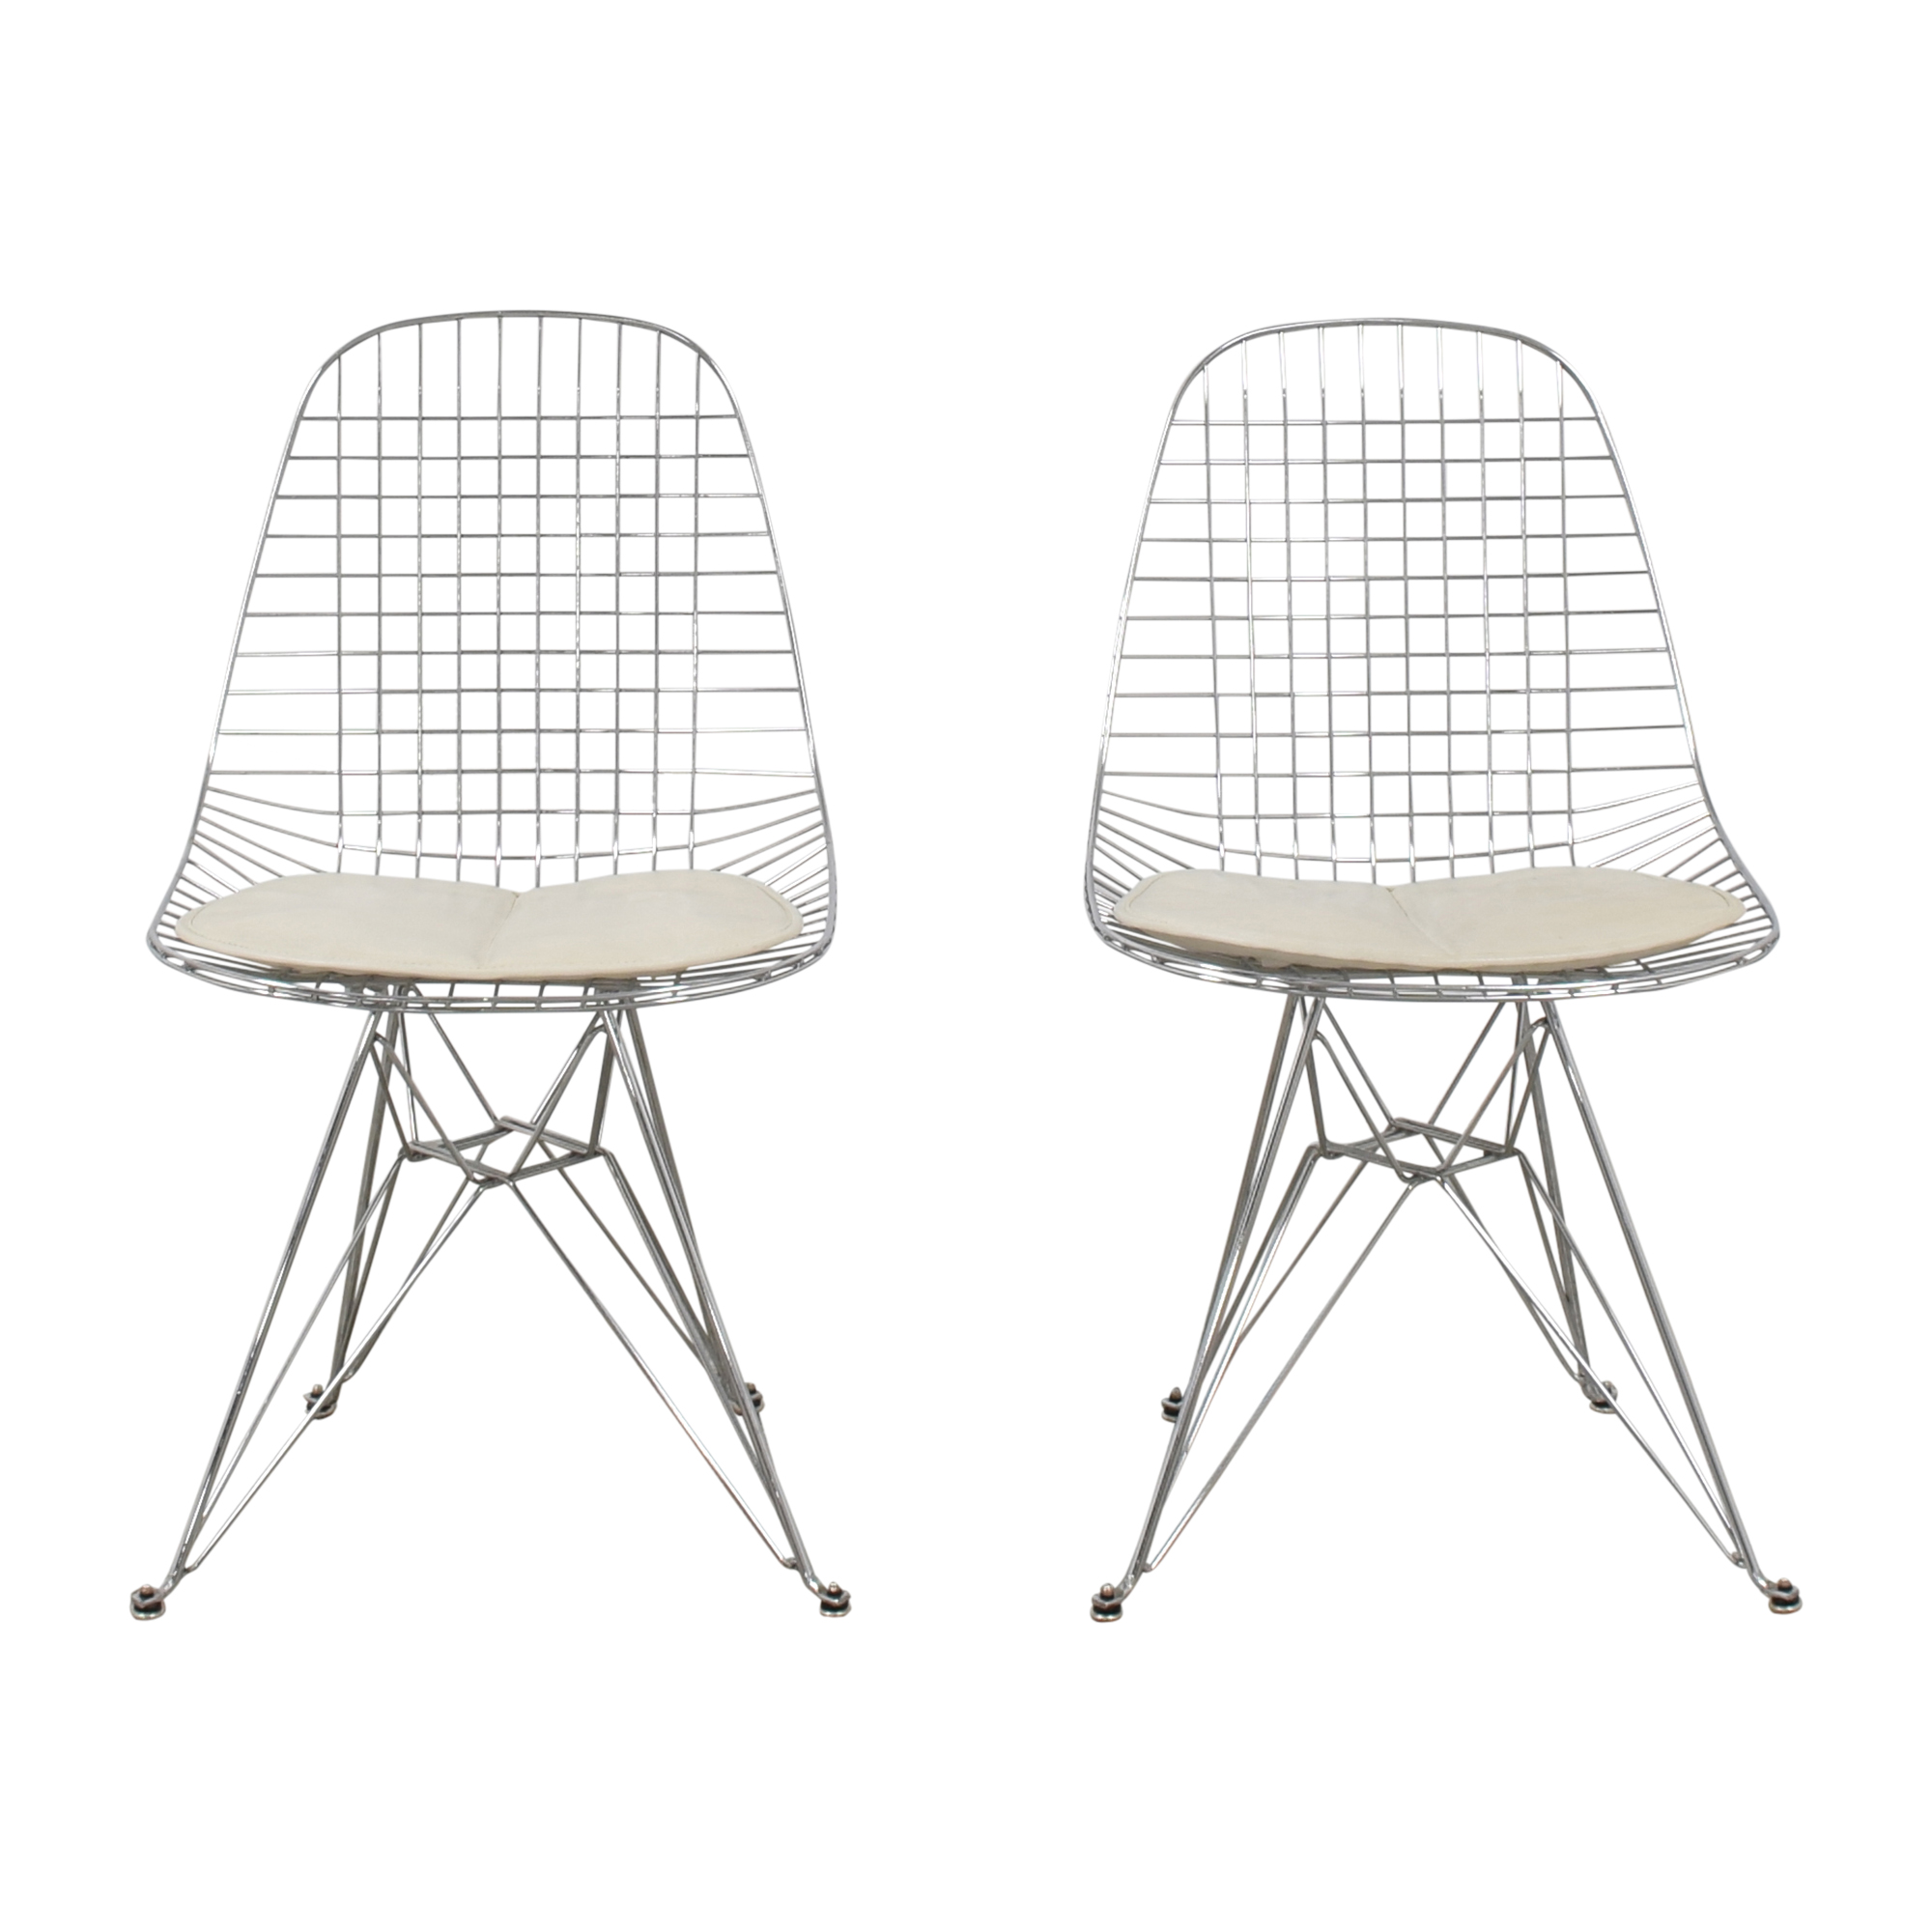 Modernica Modernica Case Study Wire Eiffel Chairs with Seat Pads nj